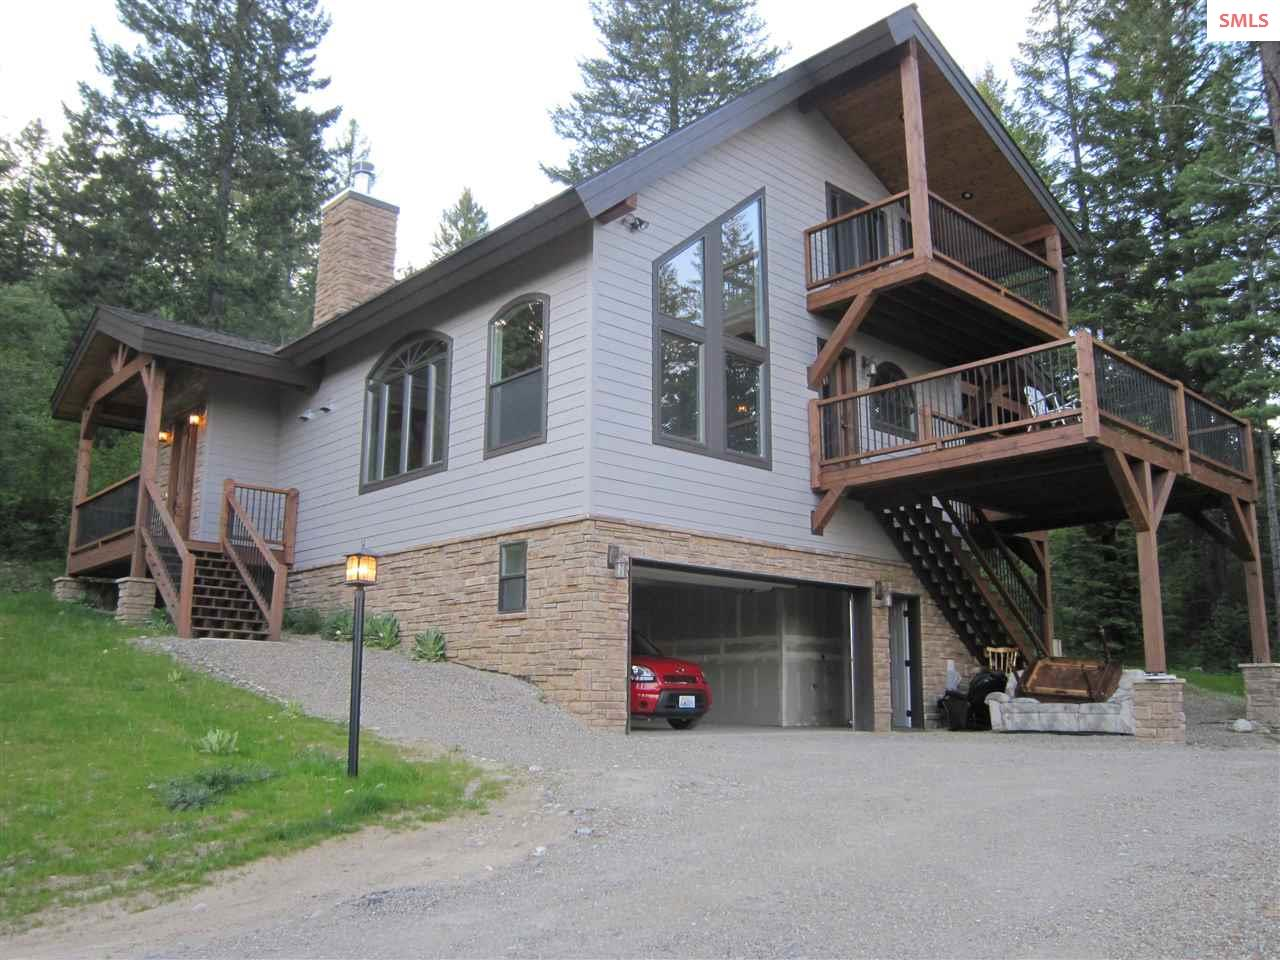 """Craftsman 3 bed 2 bath with 2424 ft on 1.52 acres. Lots of upgrade such as Knotty Alder Wood doors,High end Kitchen cabinets (Alder) and appliances with built-in oven units, as well as include cooktop w/downdraft, trash compacter, and instant hot water and custom ceramic tile on walls & floor. First floor bathroom has shower/tub combo w/ rainglass doors, and custom ceramic tile thru-out. 44"""" wood burning Fireplace, Master bedroom with 2 walk-in closets and balcony w/ view of lake. -Master bath has double hickory vanity w/granite counter, whirlpool, rain glass shower unit and tubular skylight. High efficiency Heat pump. Huge red cedar deck to enjoy the view. There is so much more! Worth a look! Only a few miles to Garfield Bay where there is marina and restaurant.  Original home-owner custom design......every little detail was thought out with this home"""